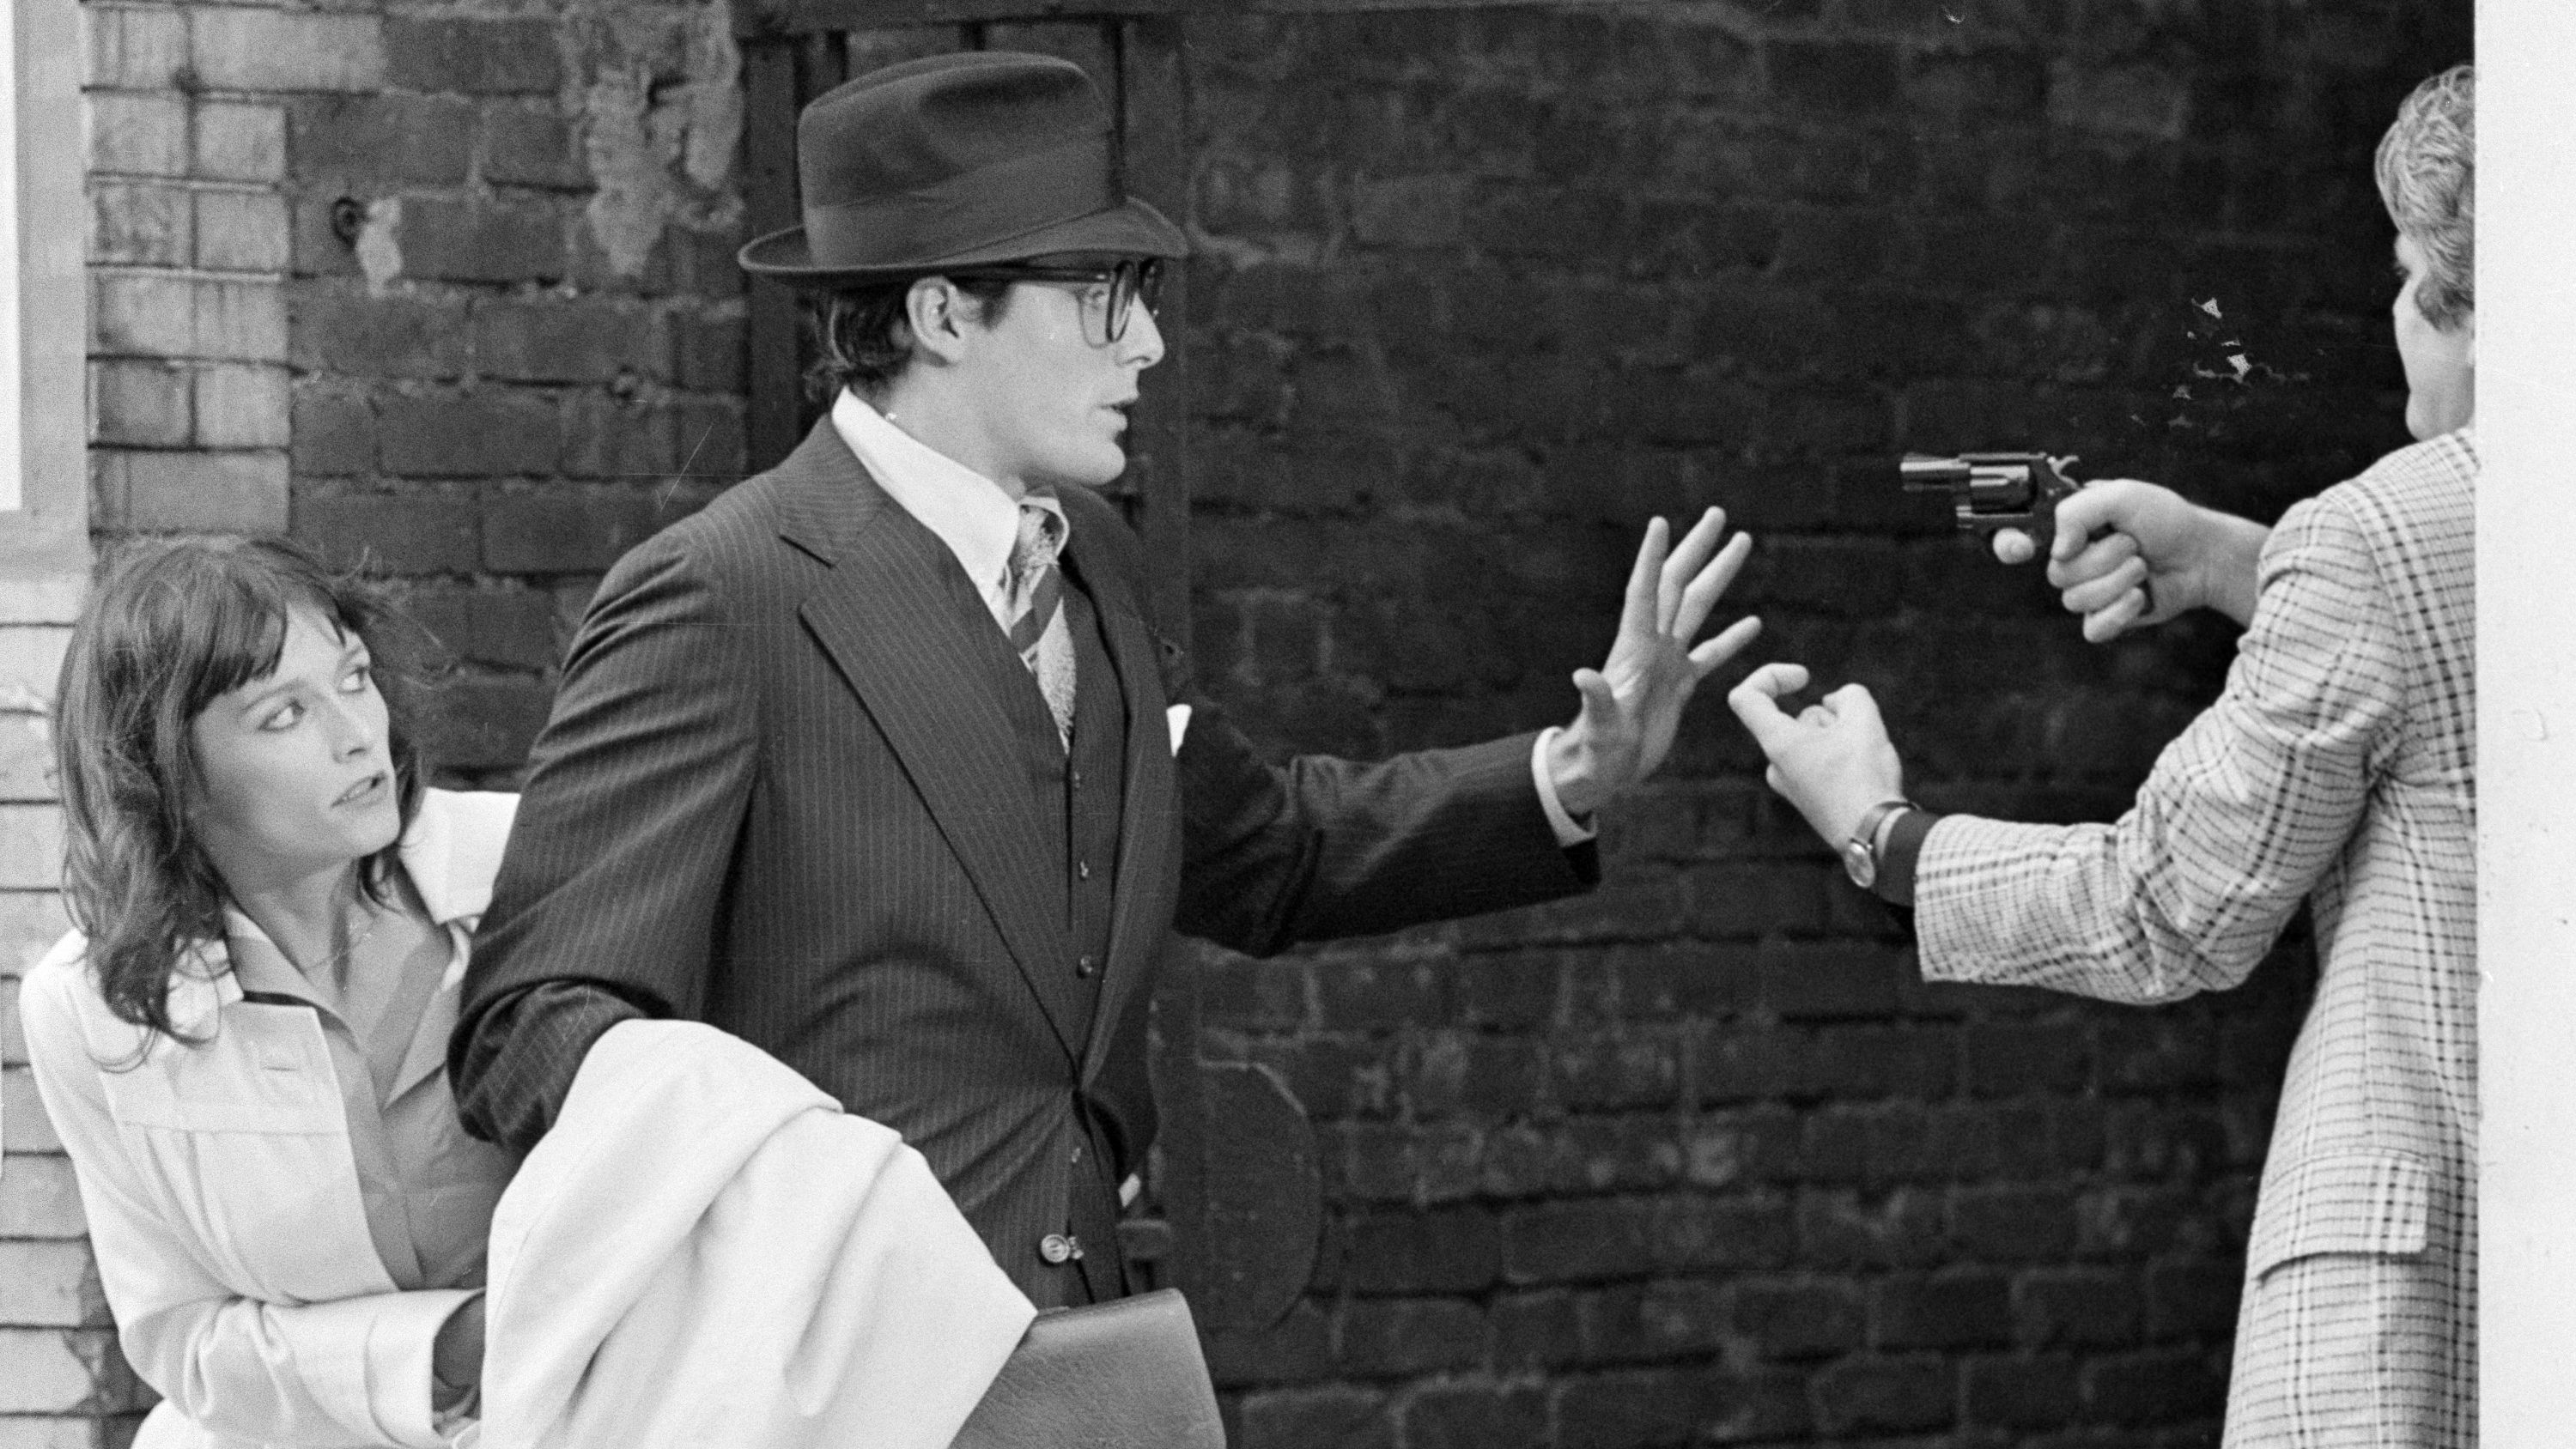 """Clark Kent, aka Superman portrayed by Christopher Reeve, raises his hand as he and Lois Lane, portrayed by Margot Kidder, left, are mugged by an armed man in an alleyway in the Lower East Side during a scene from """"Superman"""" filmed in New York City, Friday, July 8, 1977. (AP Photo)"""